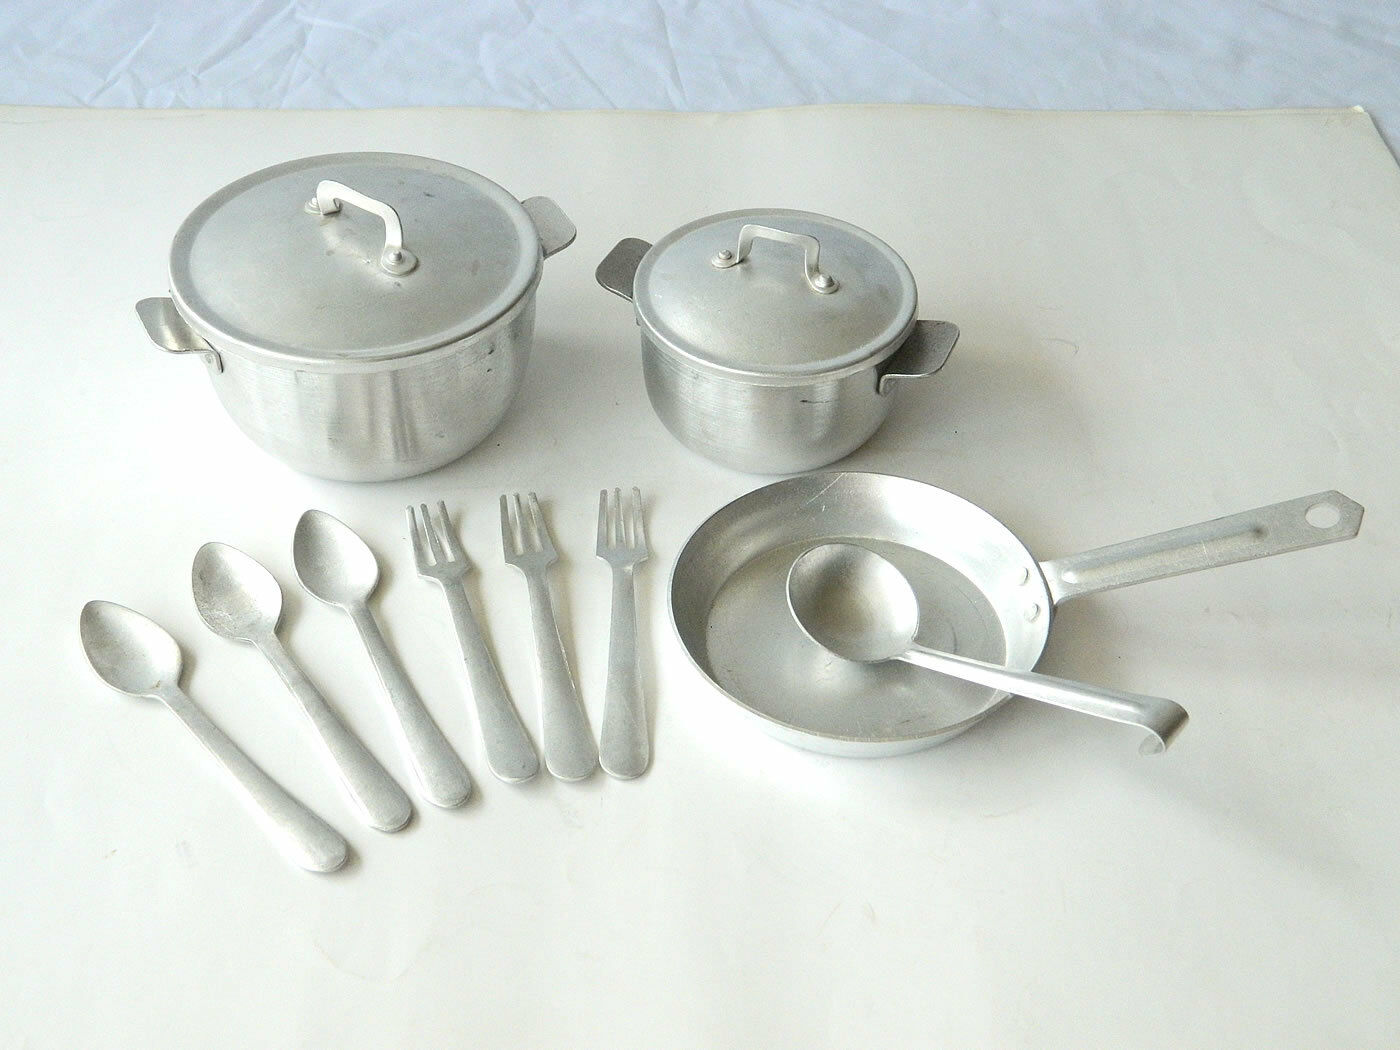 Ca.1920s Aluminum MINIATURE COOKING SET Portable Camping/Hiking Set